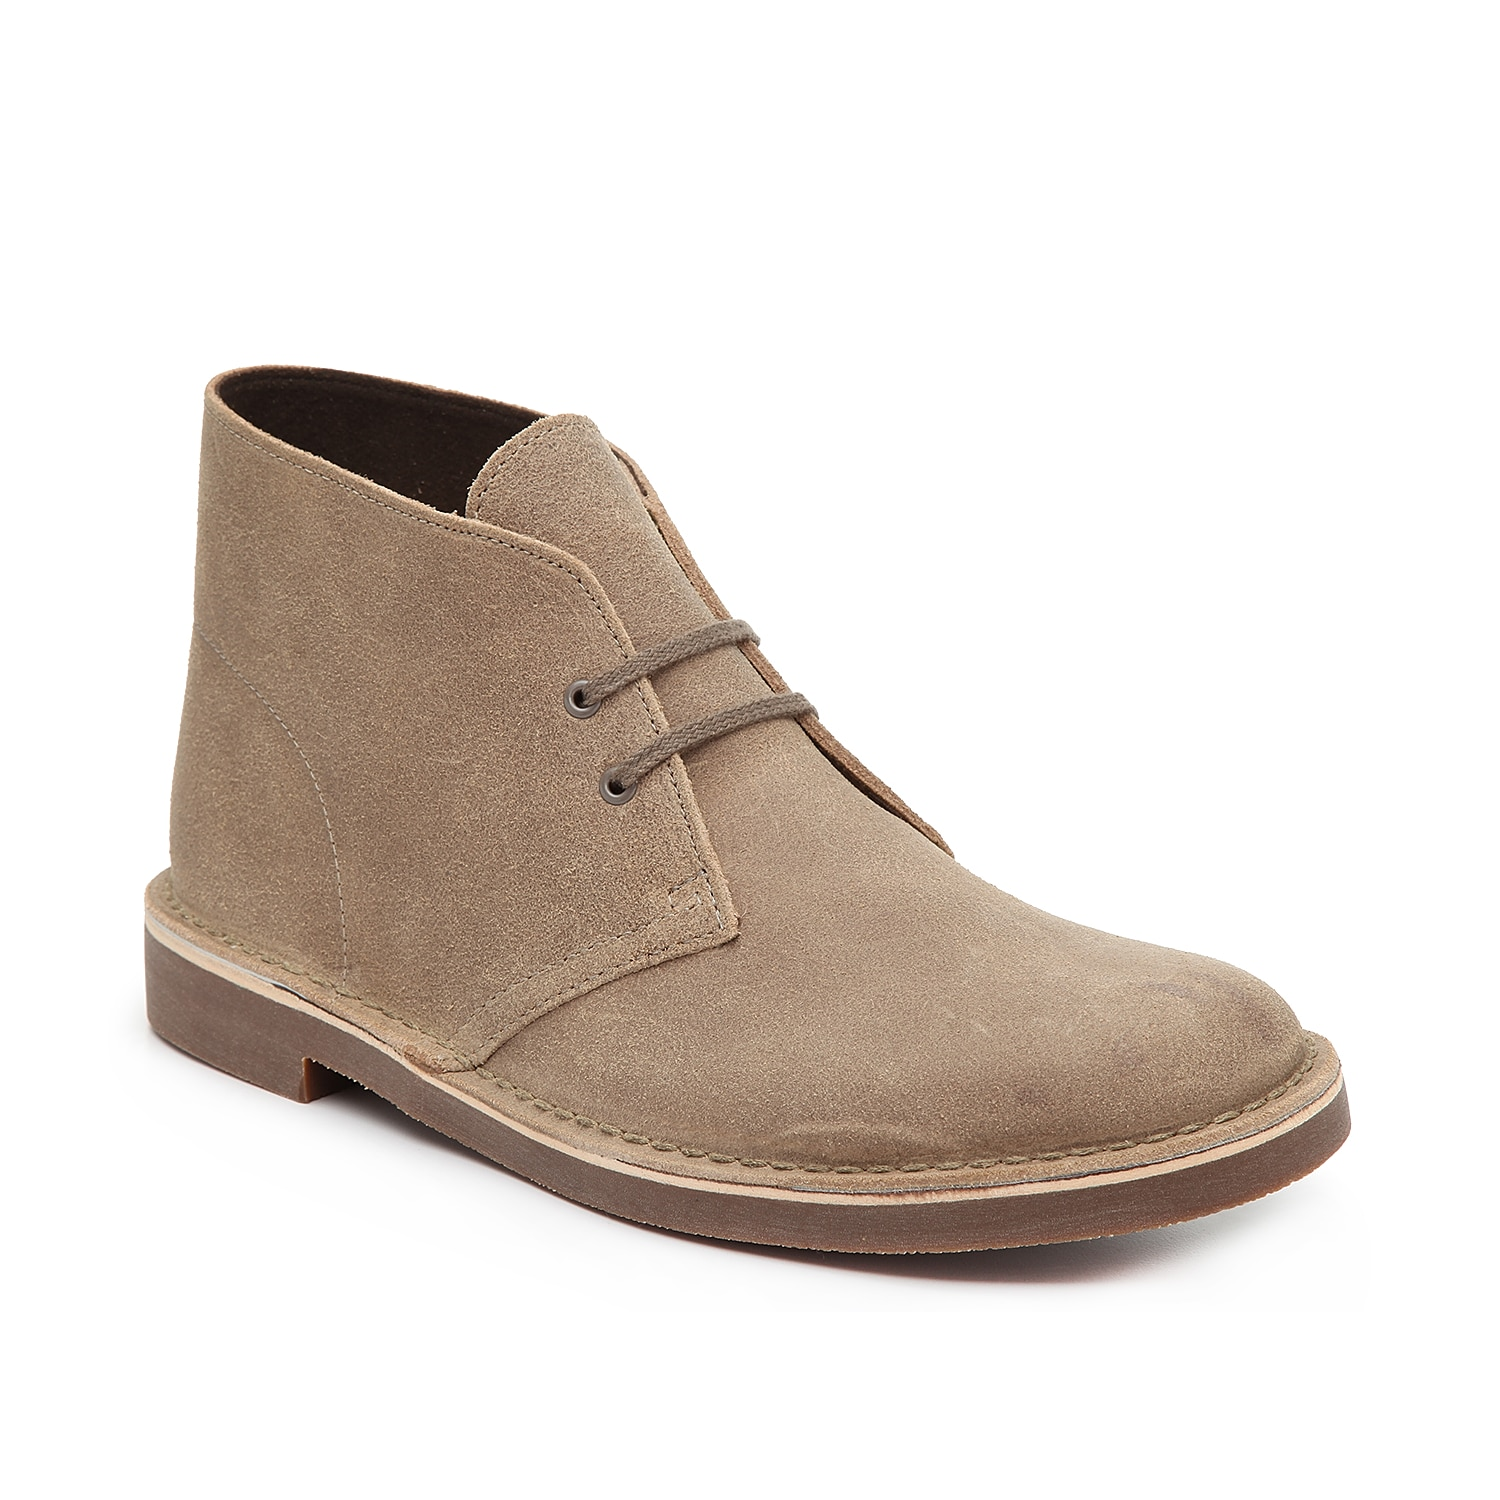 If you\\\'re looking for a shoe that delivers comfort, quality, and style, the men\\\'s Bushacre 2 desert boot from Clarks is a perfect match! This lace-up chukka provides lasting comfort with its cushioned footbed and ankle-height topline.